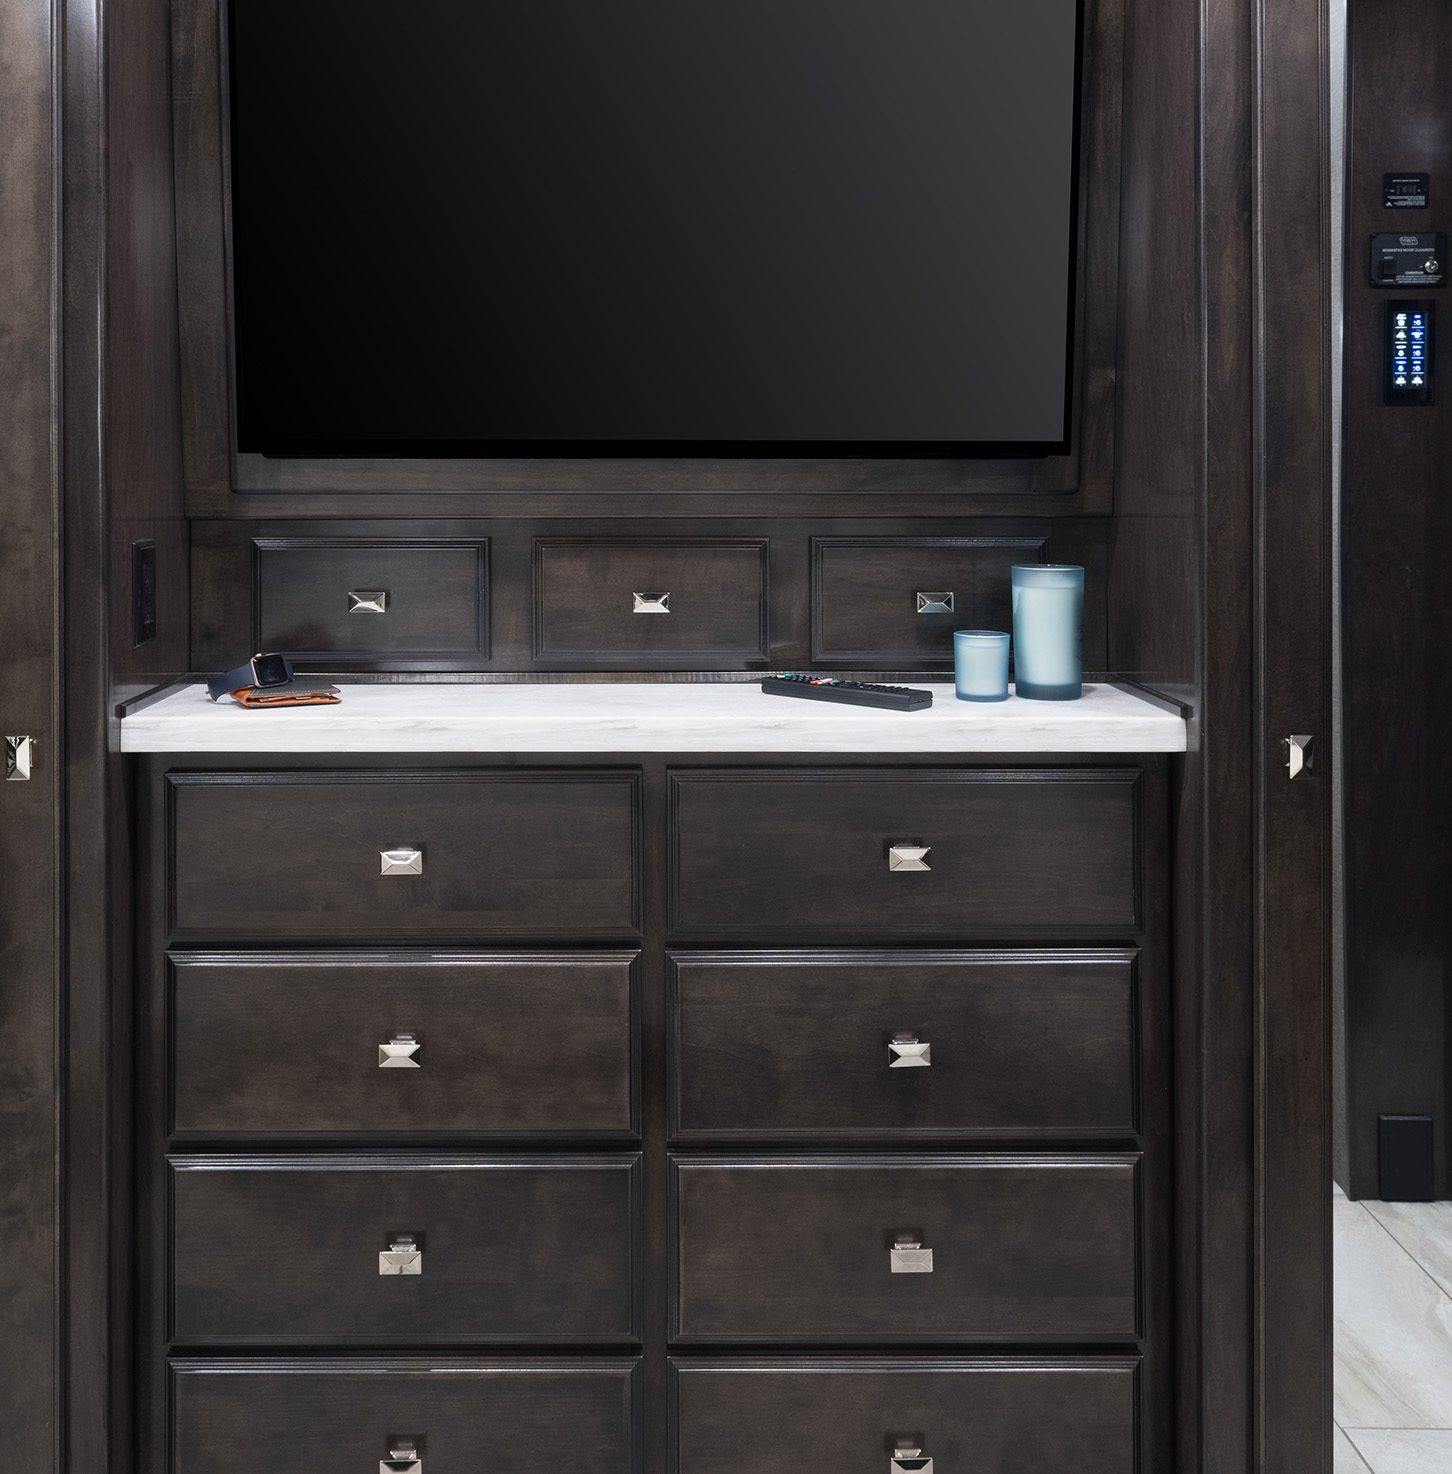 American Revolution 42V with Silverstone décor and Dorian Grey cabinetry